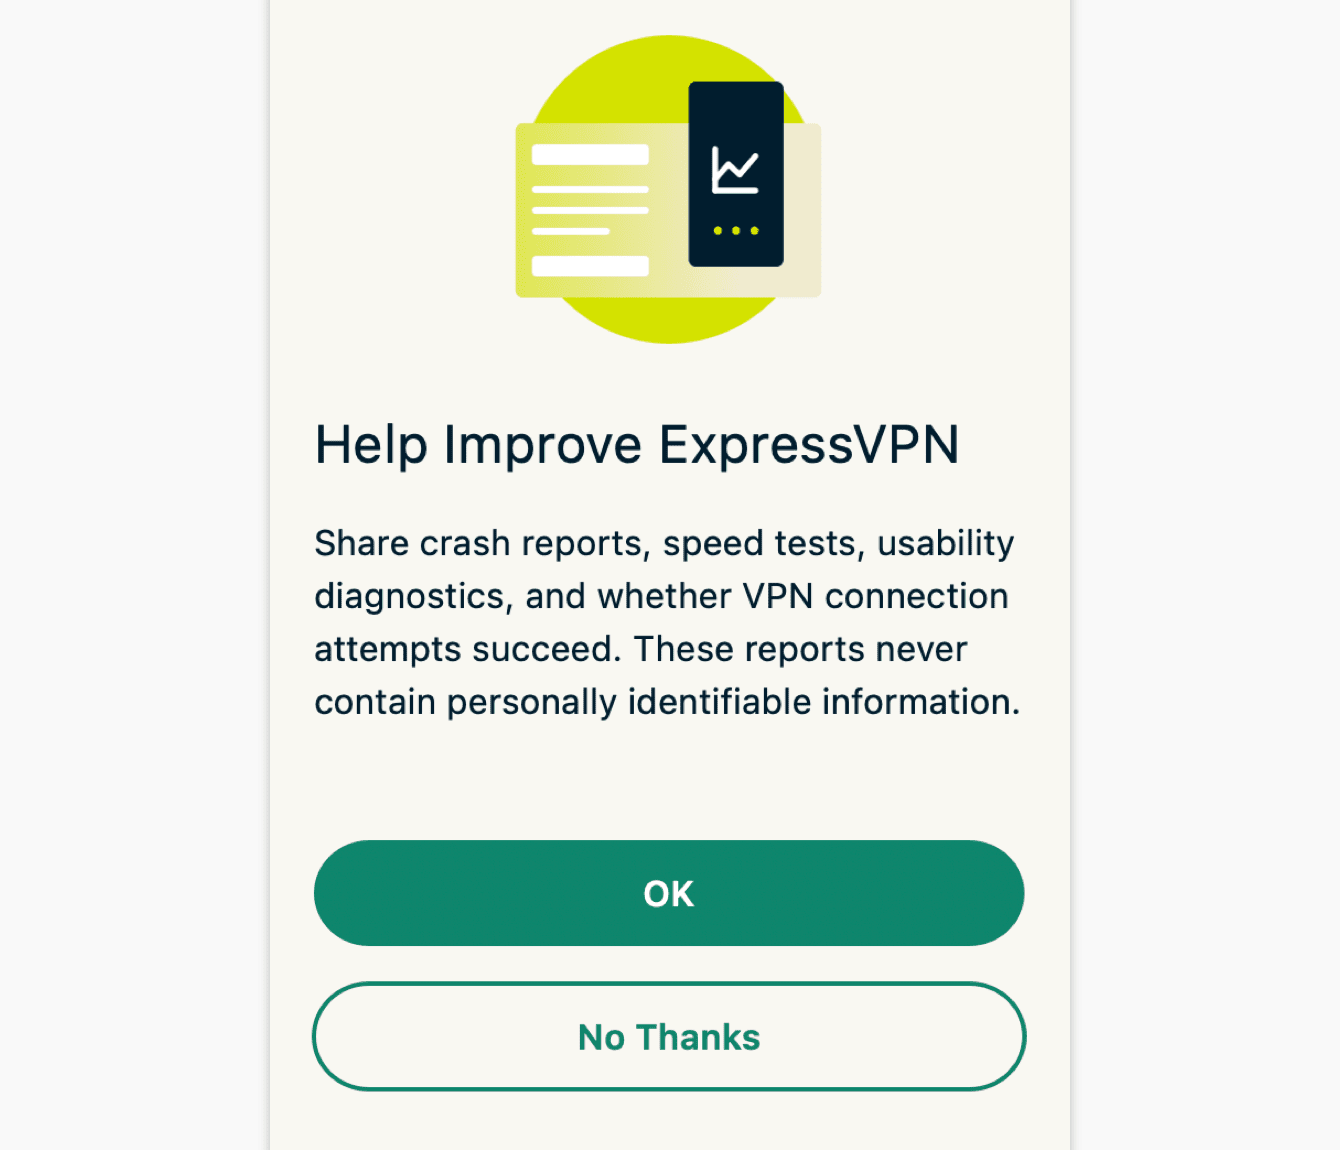 Select your preference for helping improve ExpressVPN.